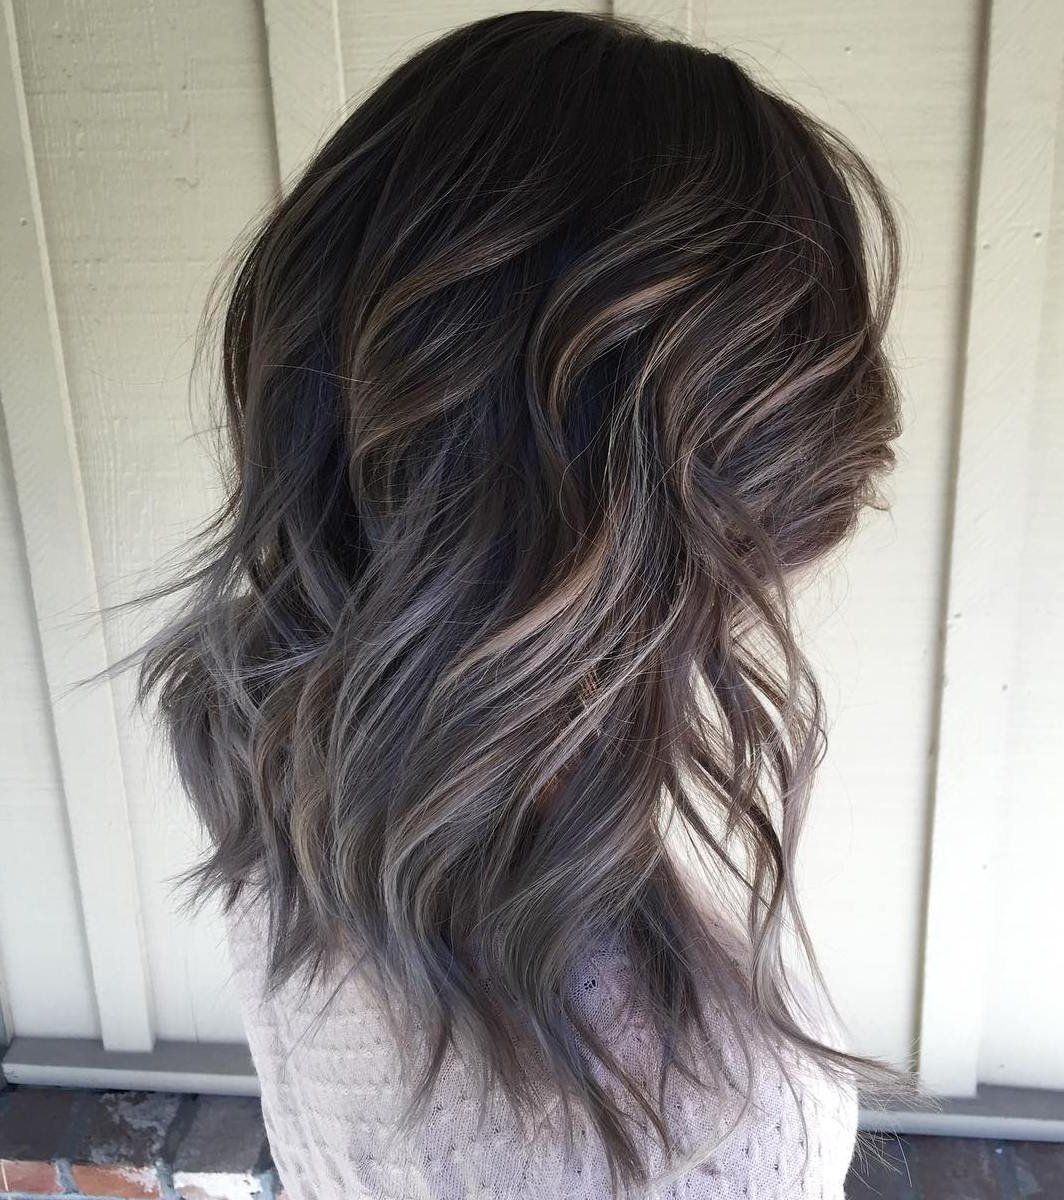 45 Ideas Of Gray And Silver Highlights On Brown Hair Pertaining To Salt And Pepper Voluminous Haircuts (View 5 of 20)